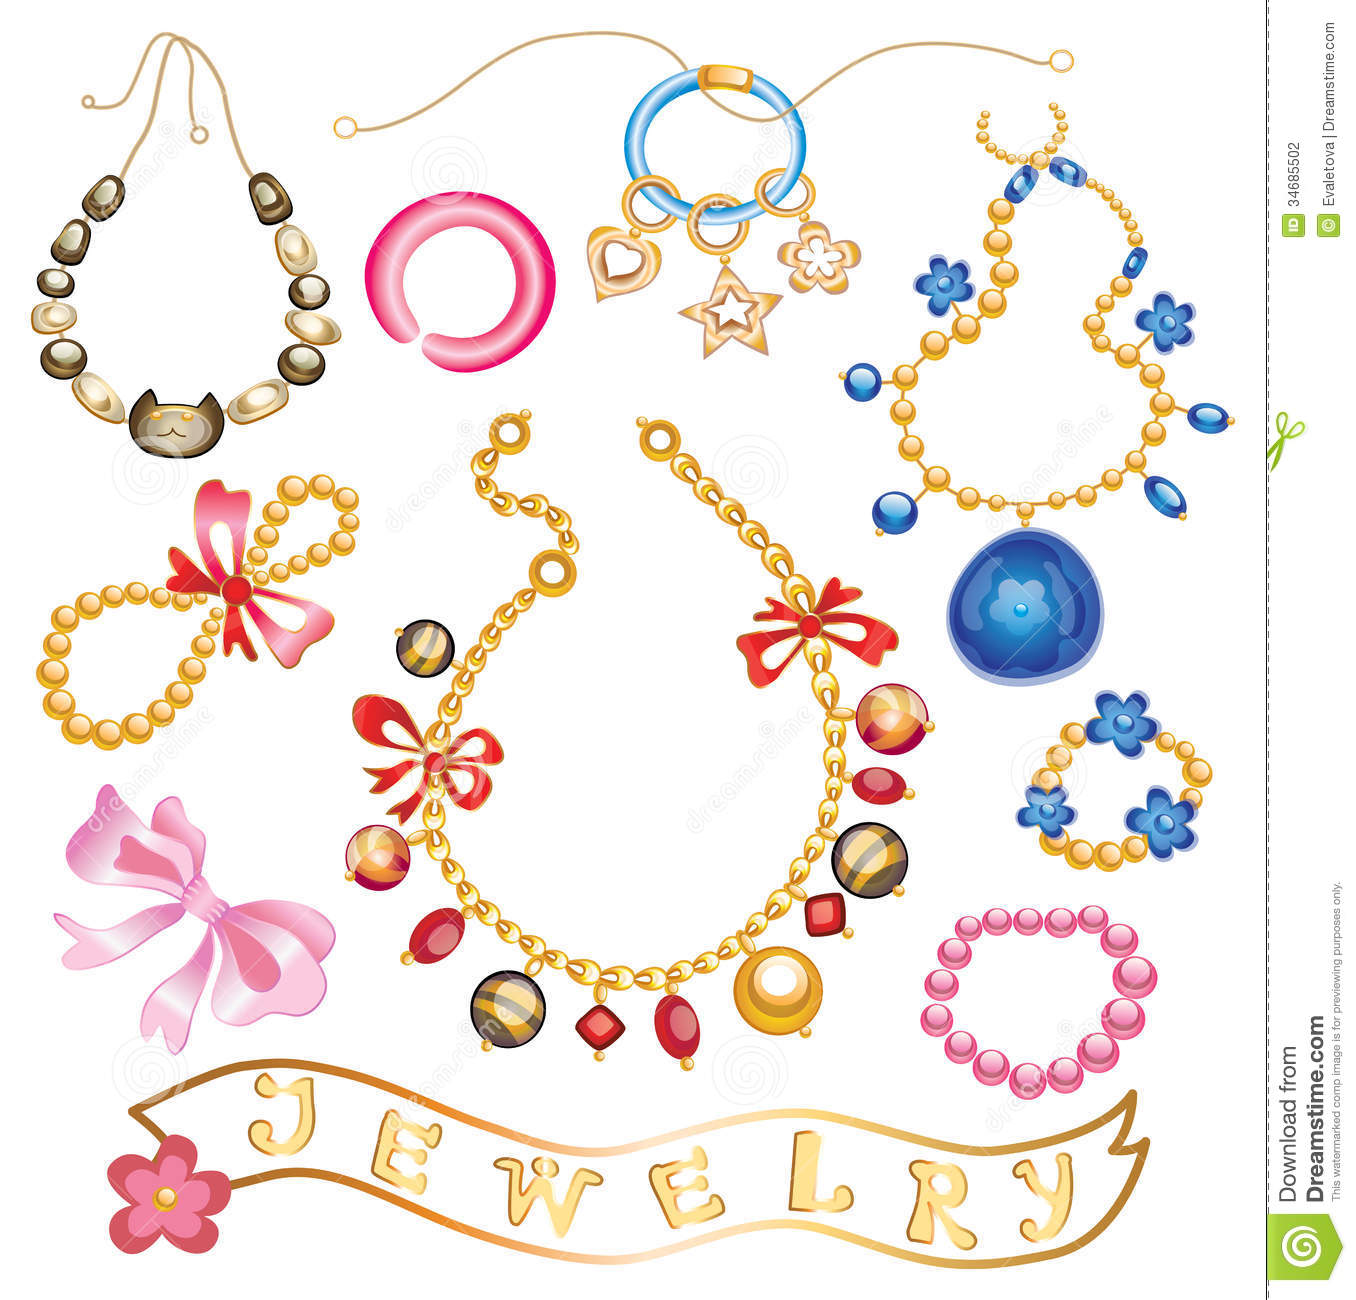 Fashion Jewelry Clip Art Collection Of Gold Jewelery With Precious